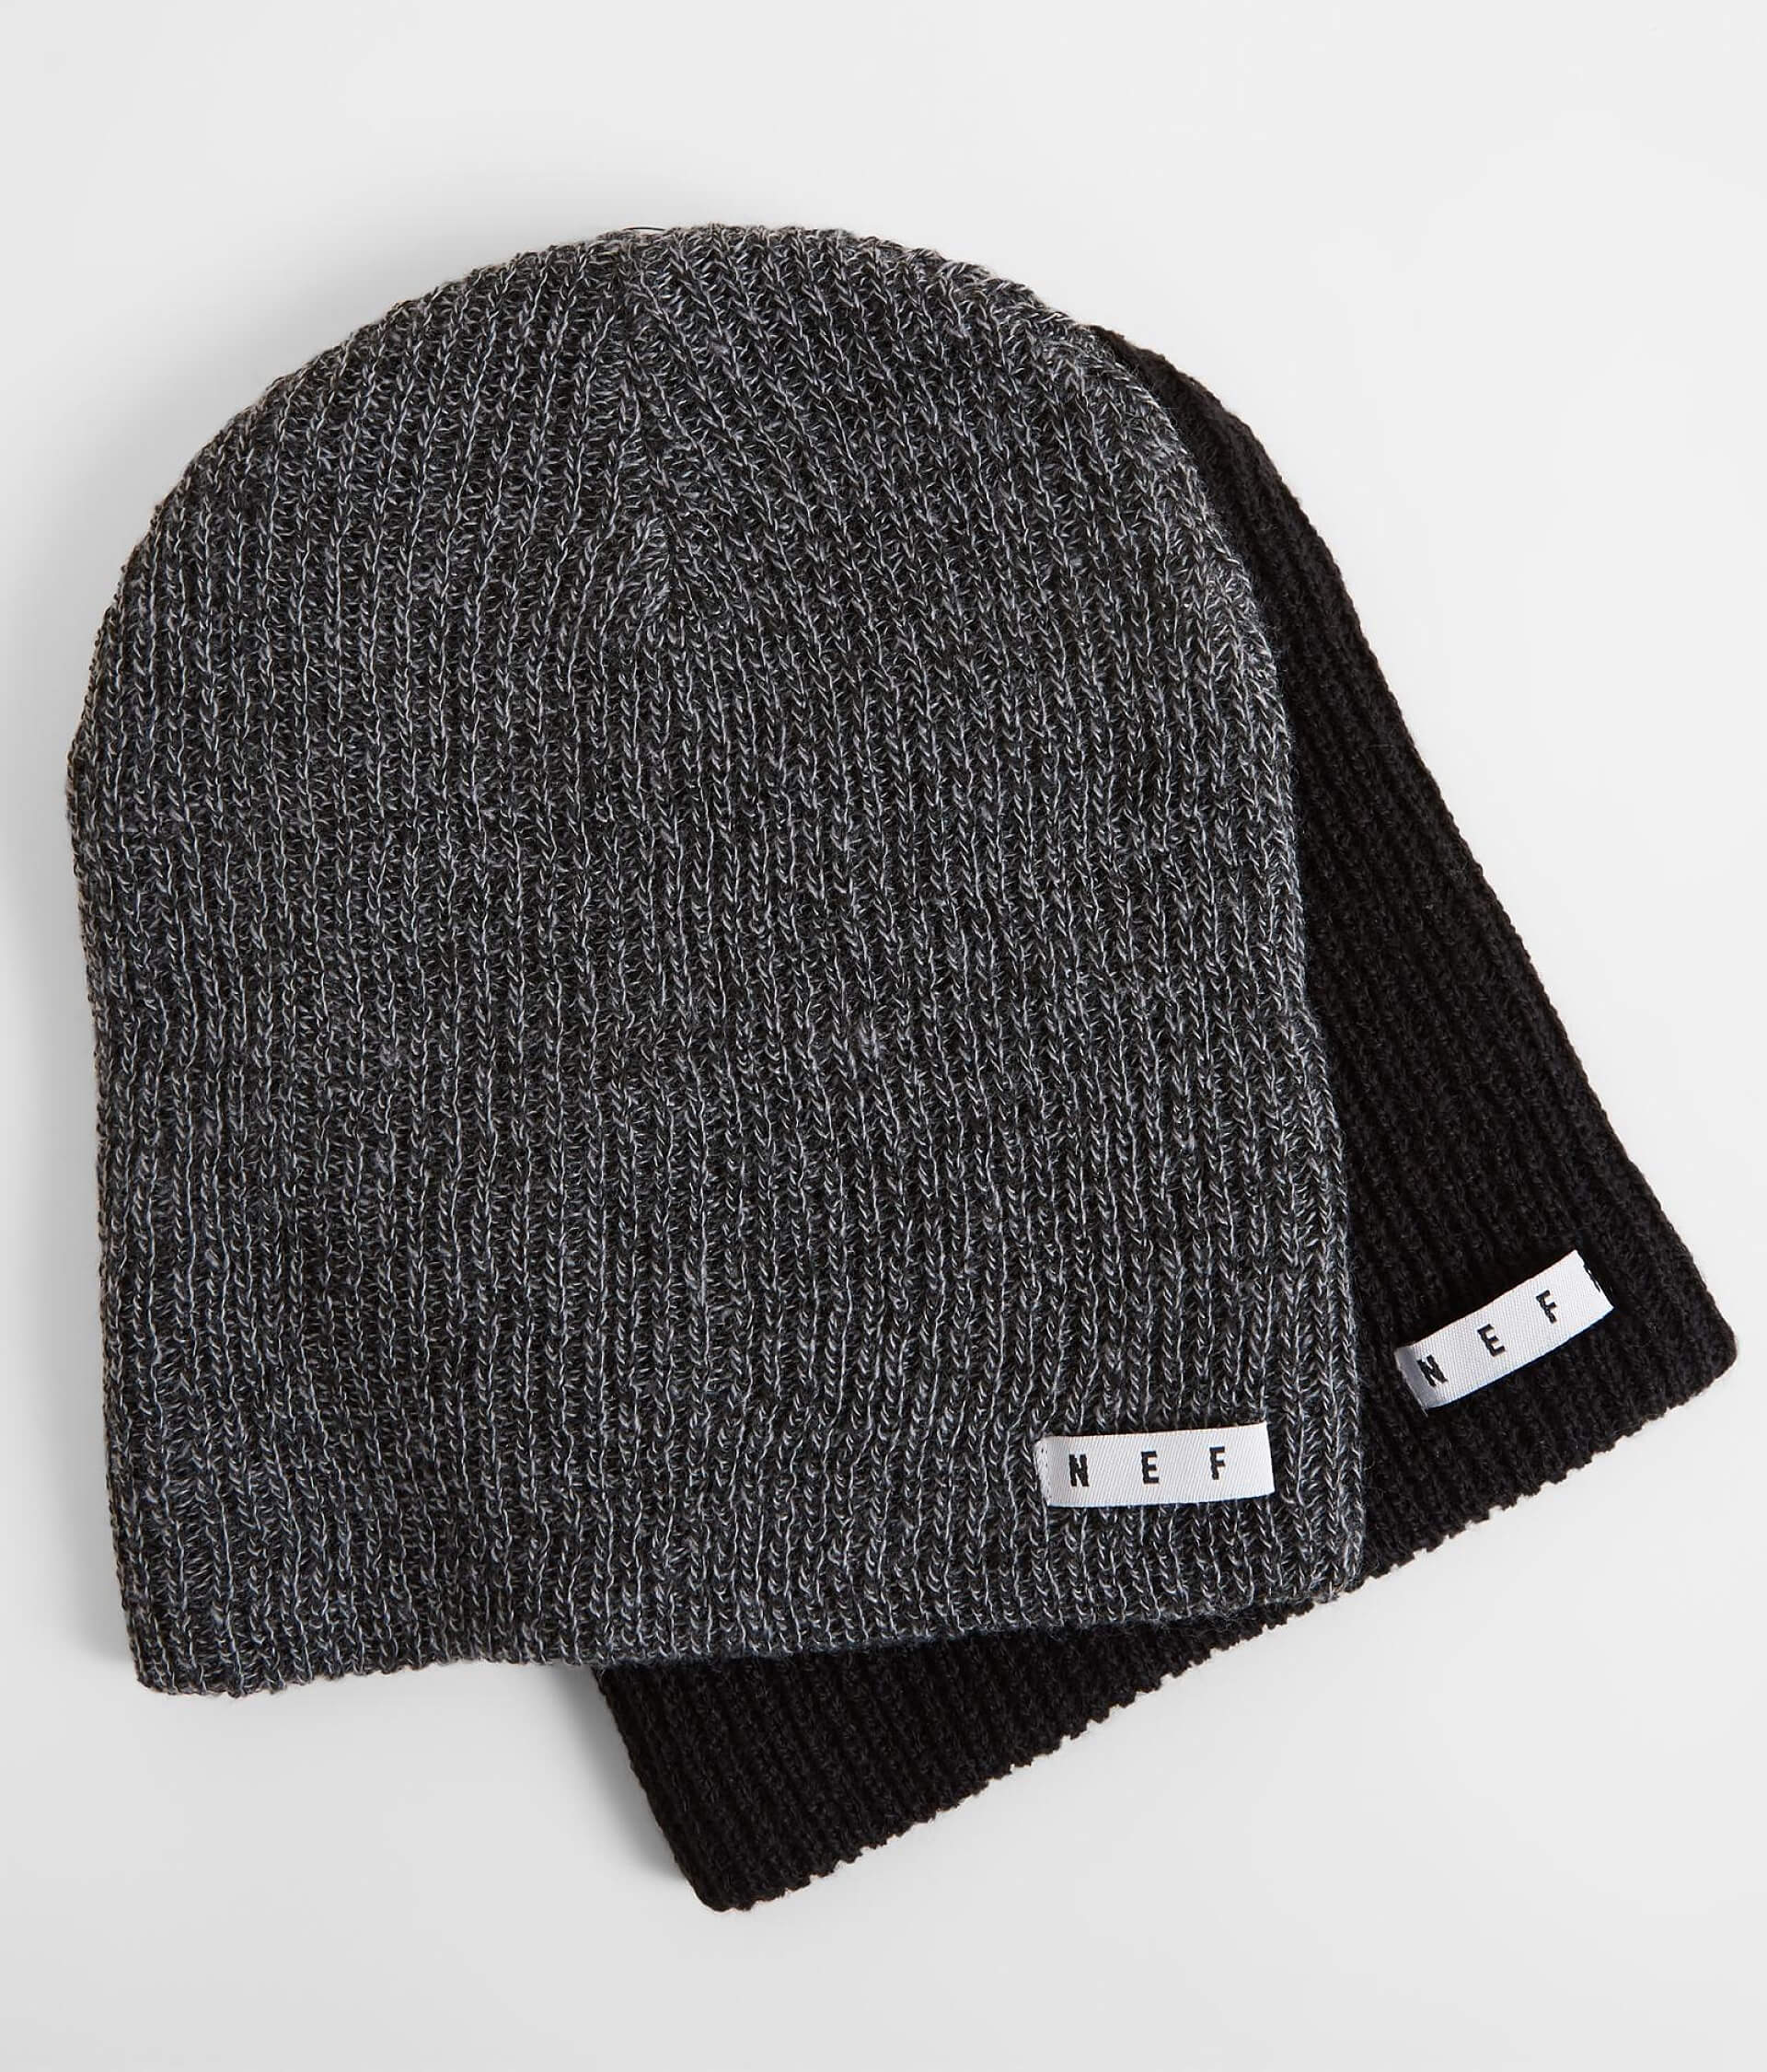 Neff Two Pack Daily Beanie - Men s Hats in Black Grey Black  9fb5820761f